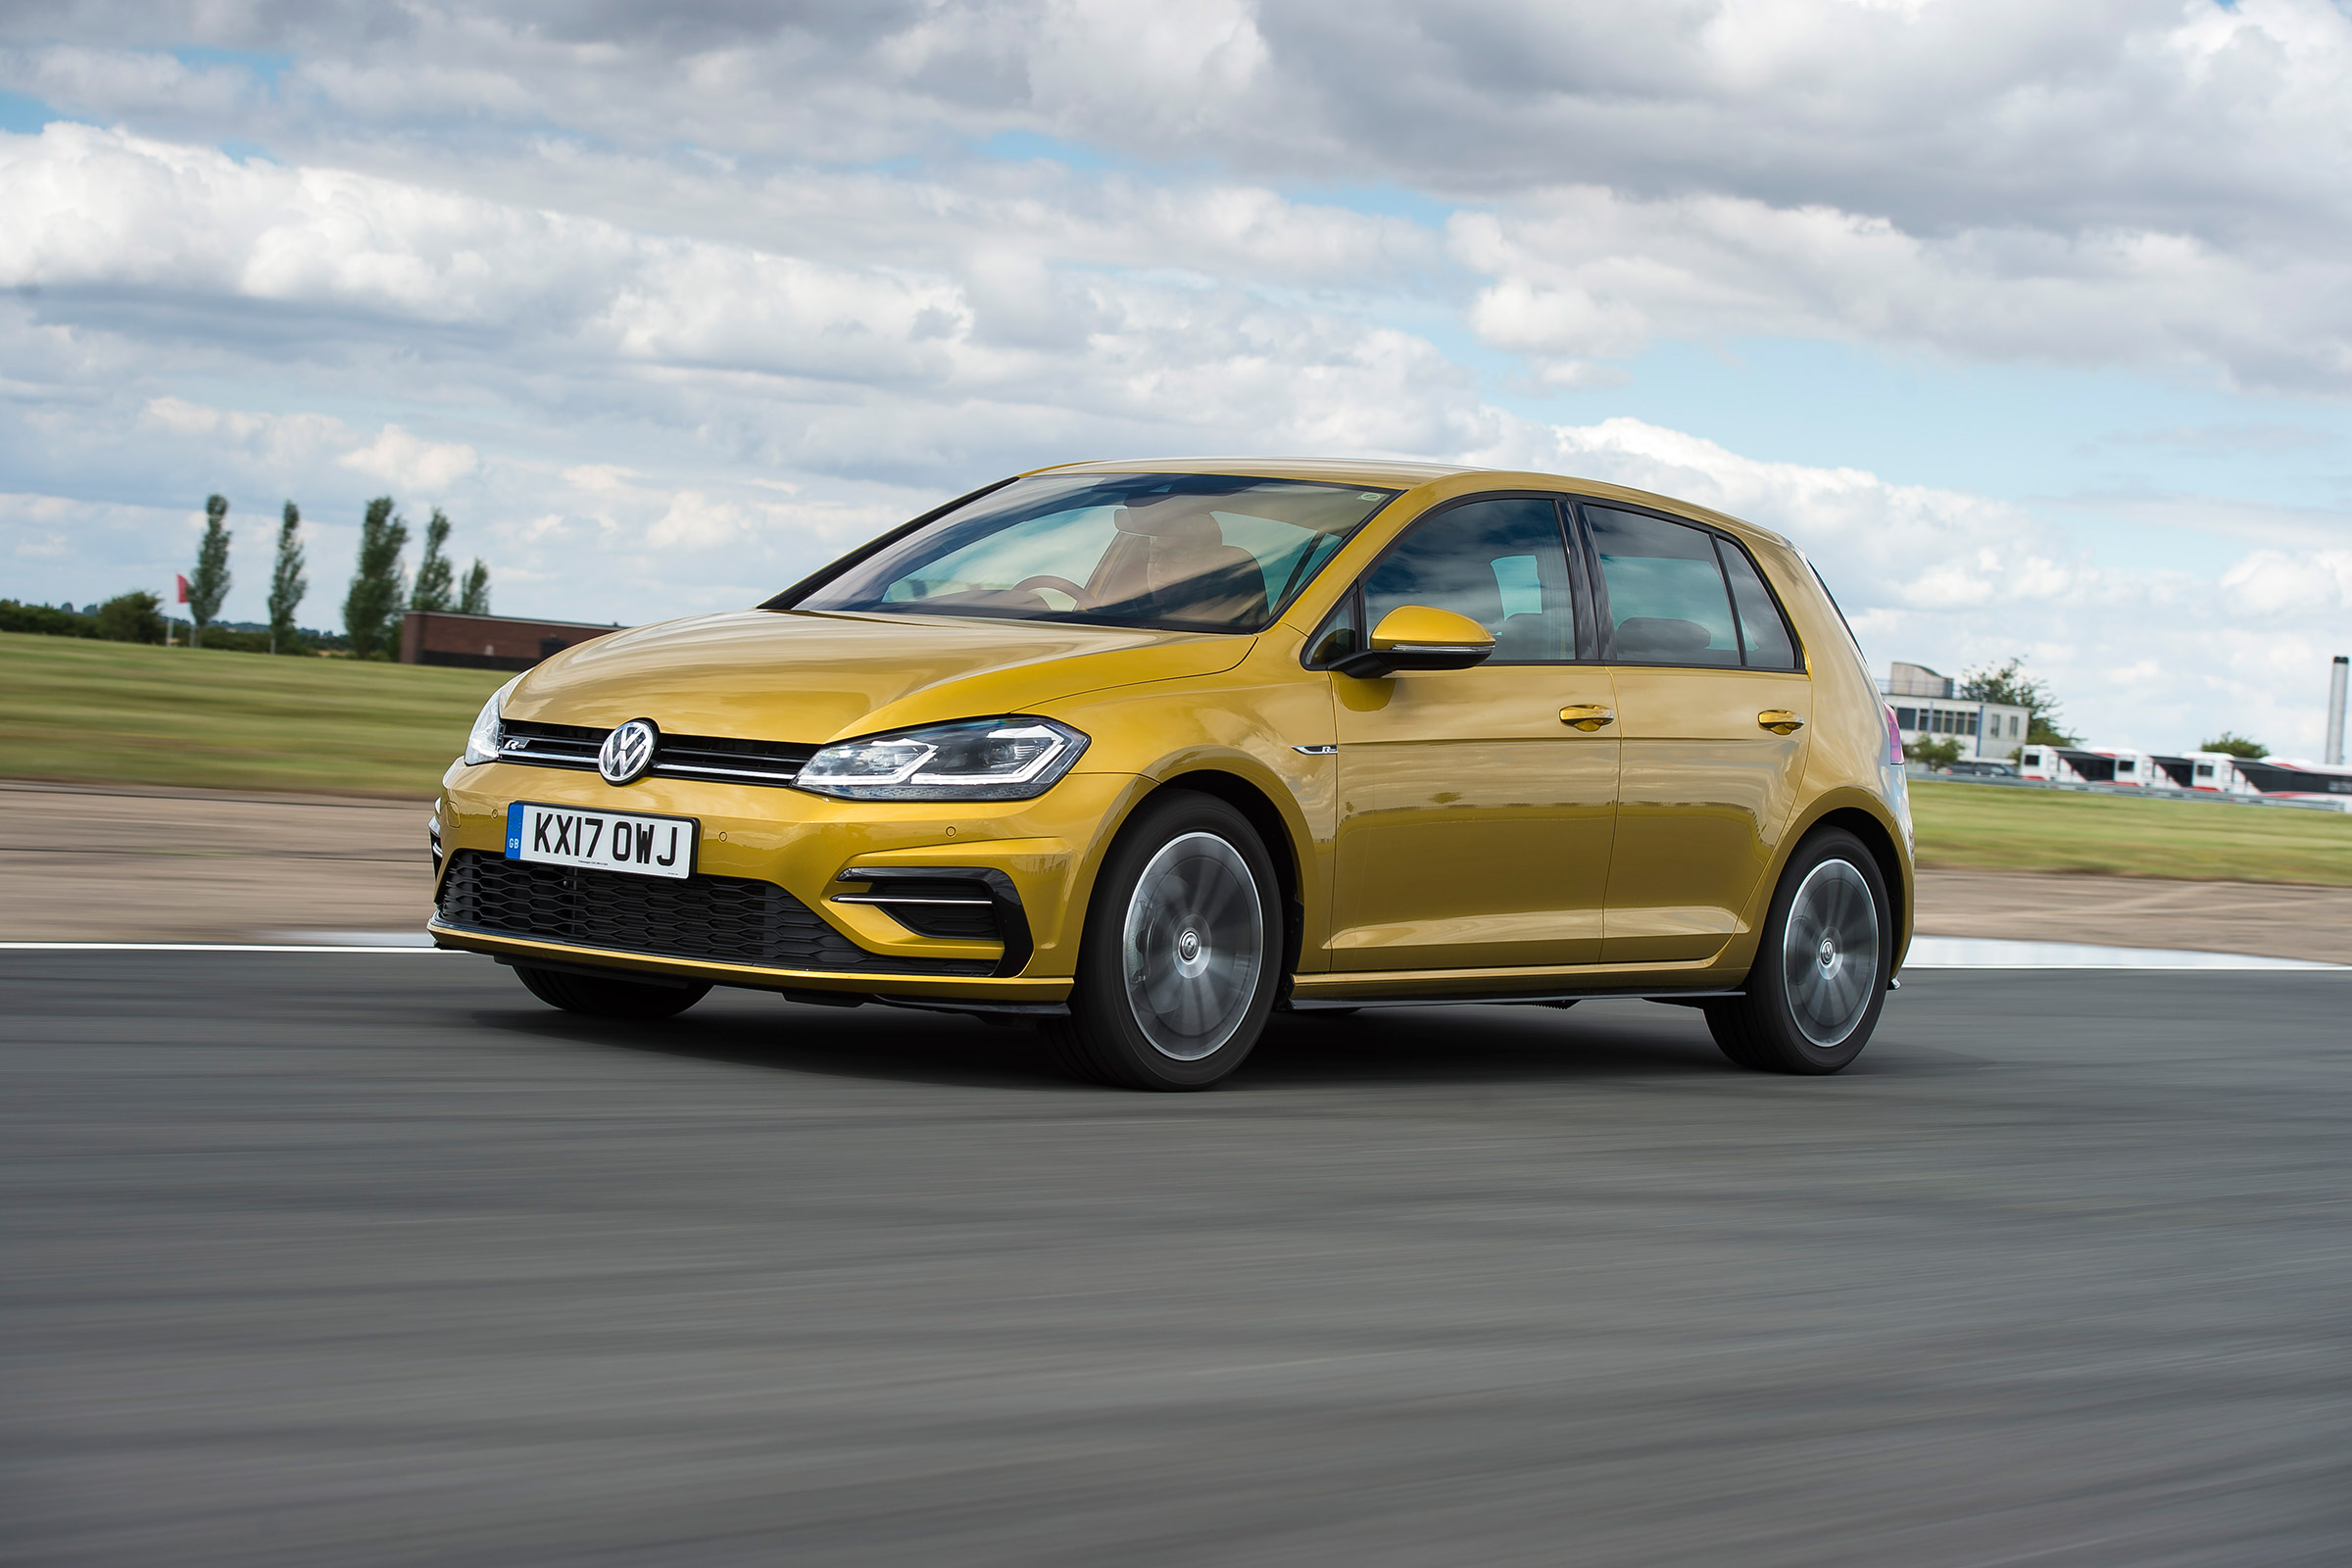 Volkswagen Golf 1 5 TSI Evo review - does the Evo engine